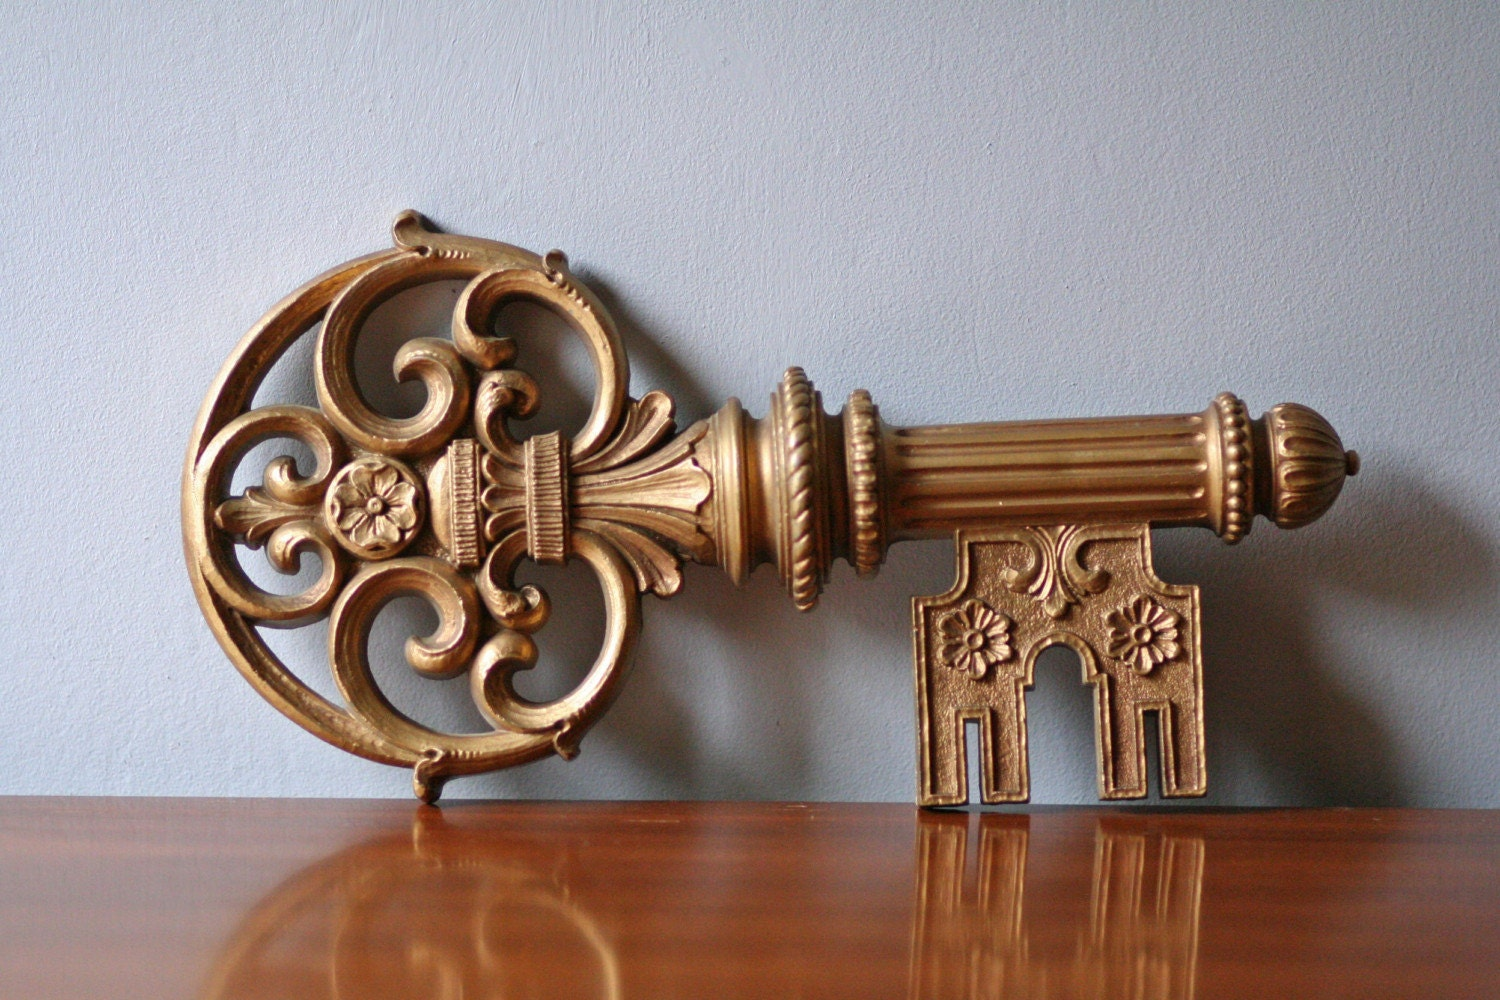 Wall Decor Keys : Syroco decorative key wall decor in gold tone